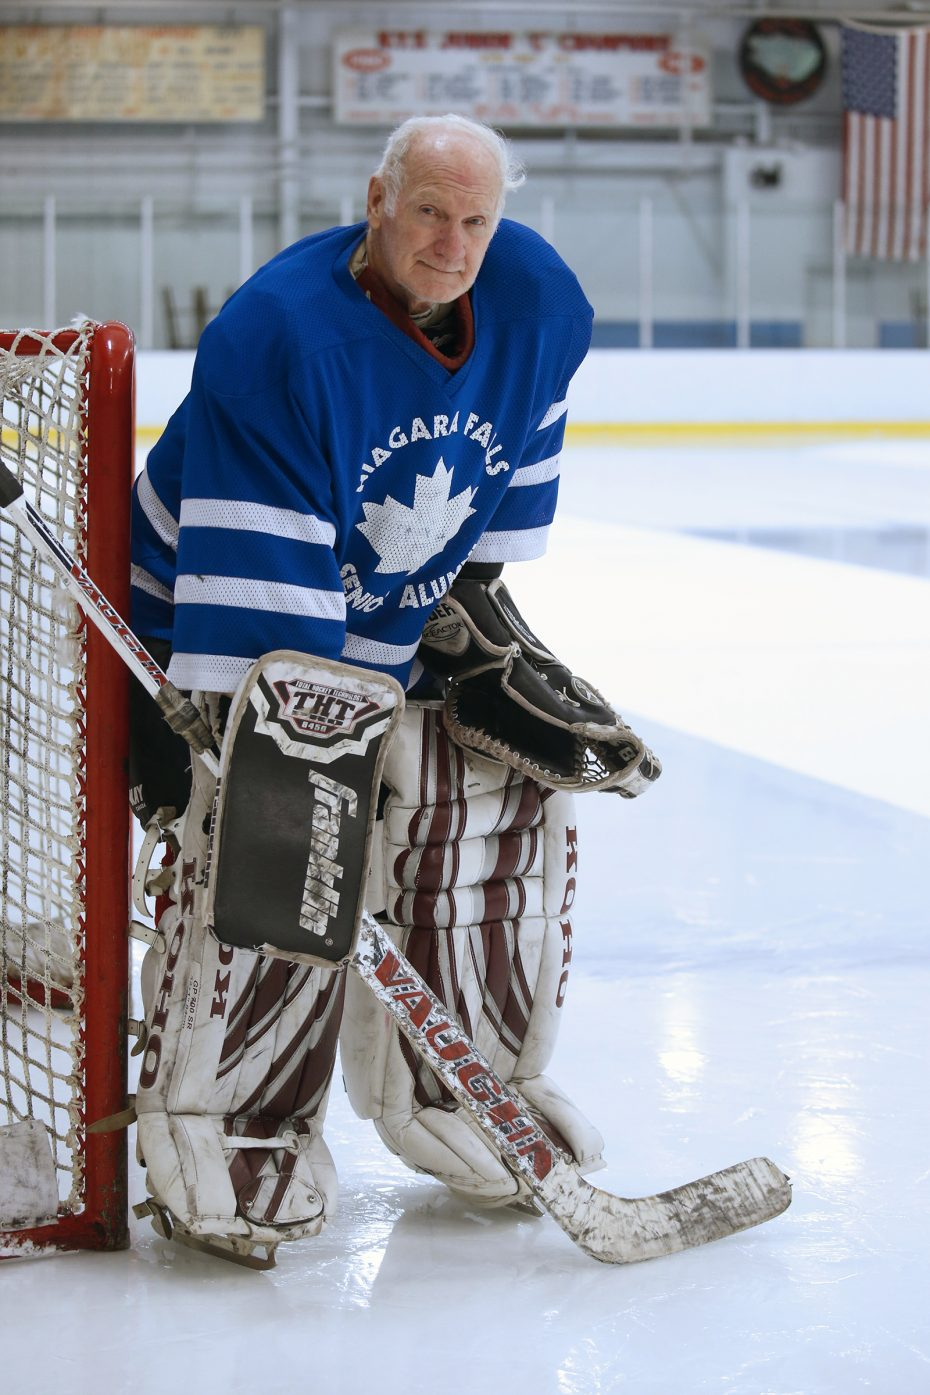 Eddie Farrell 81 Laces Up For The Love Of Hockey And The